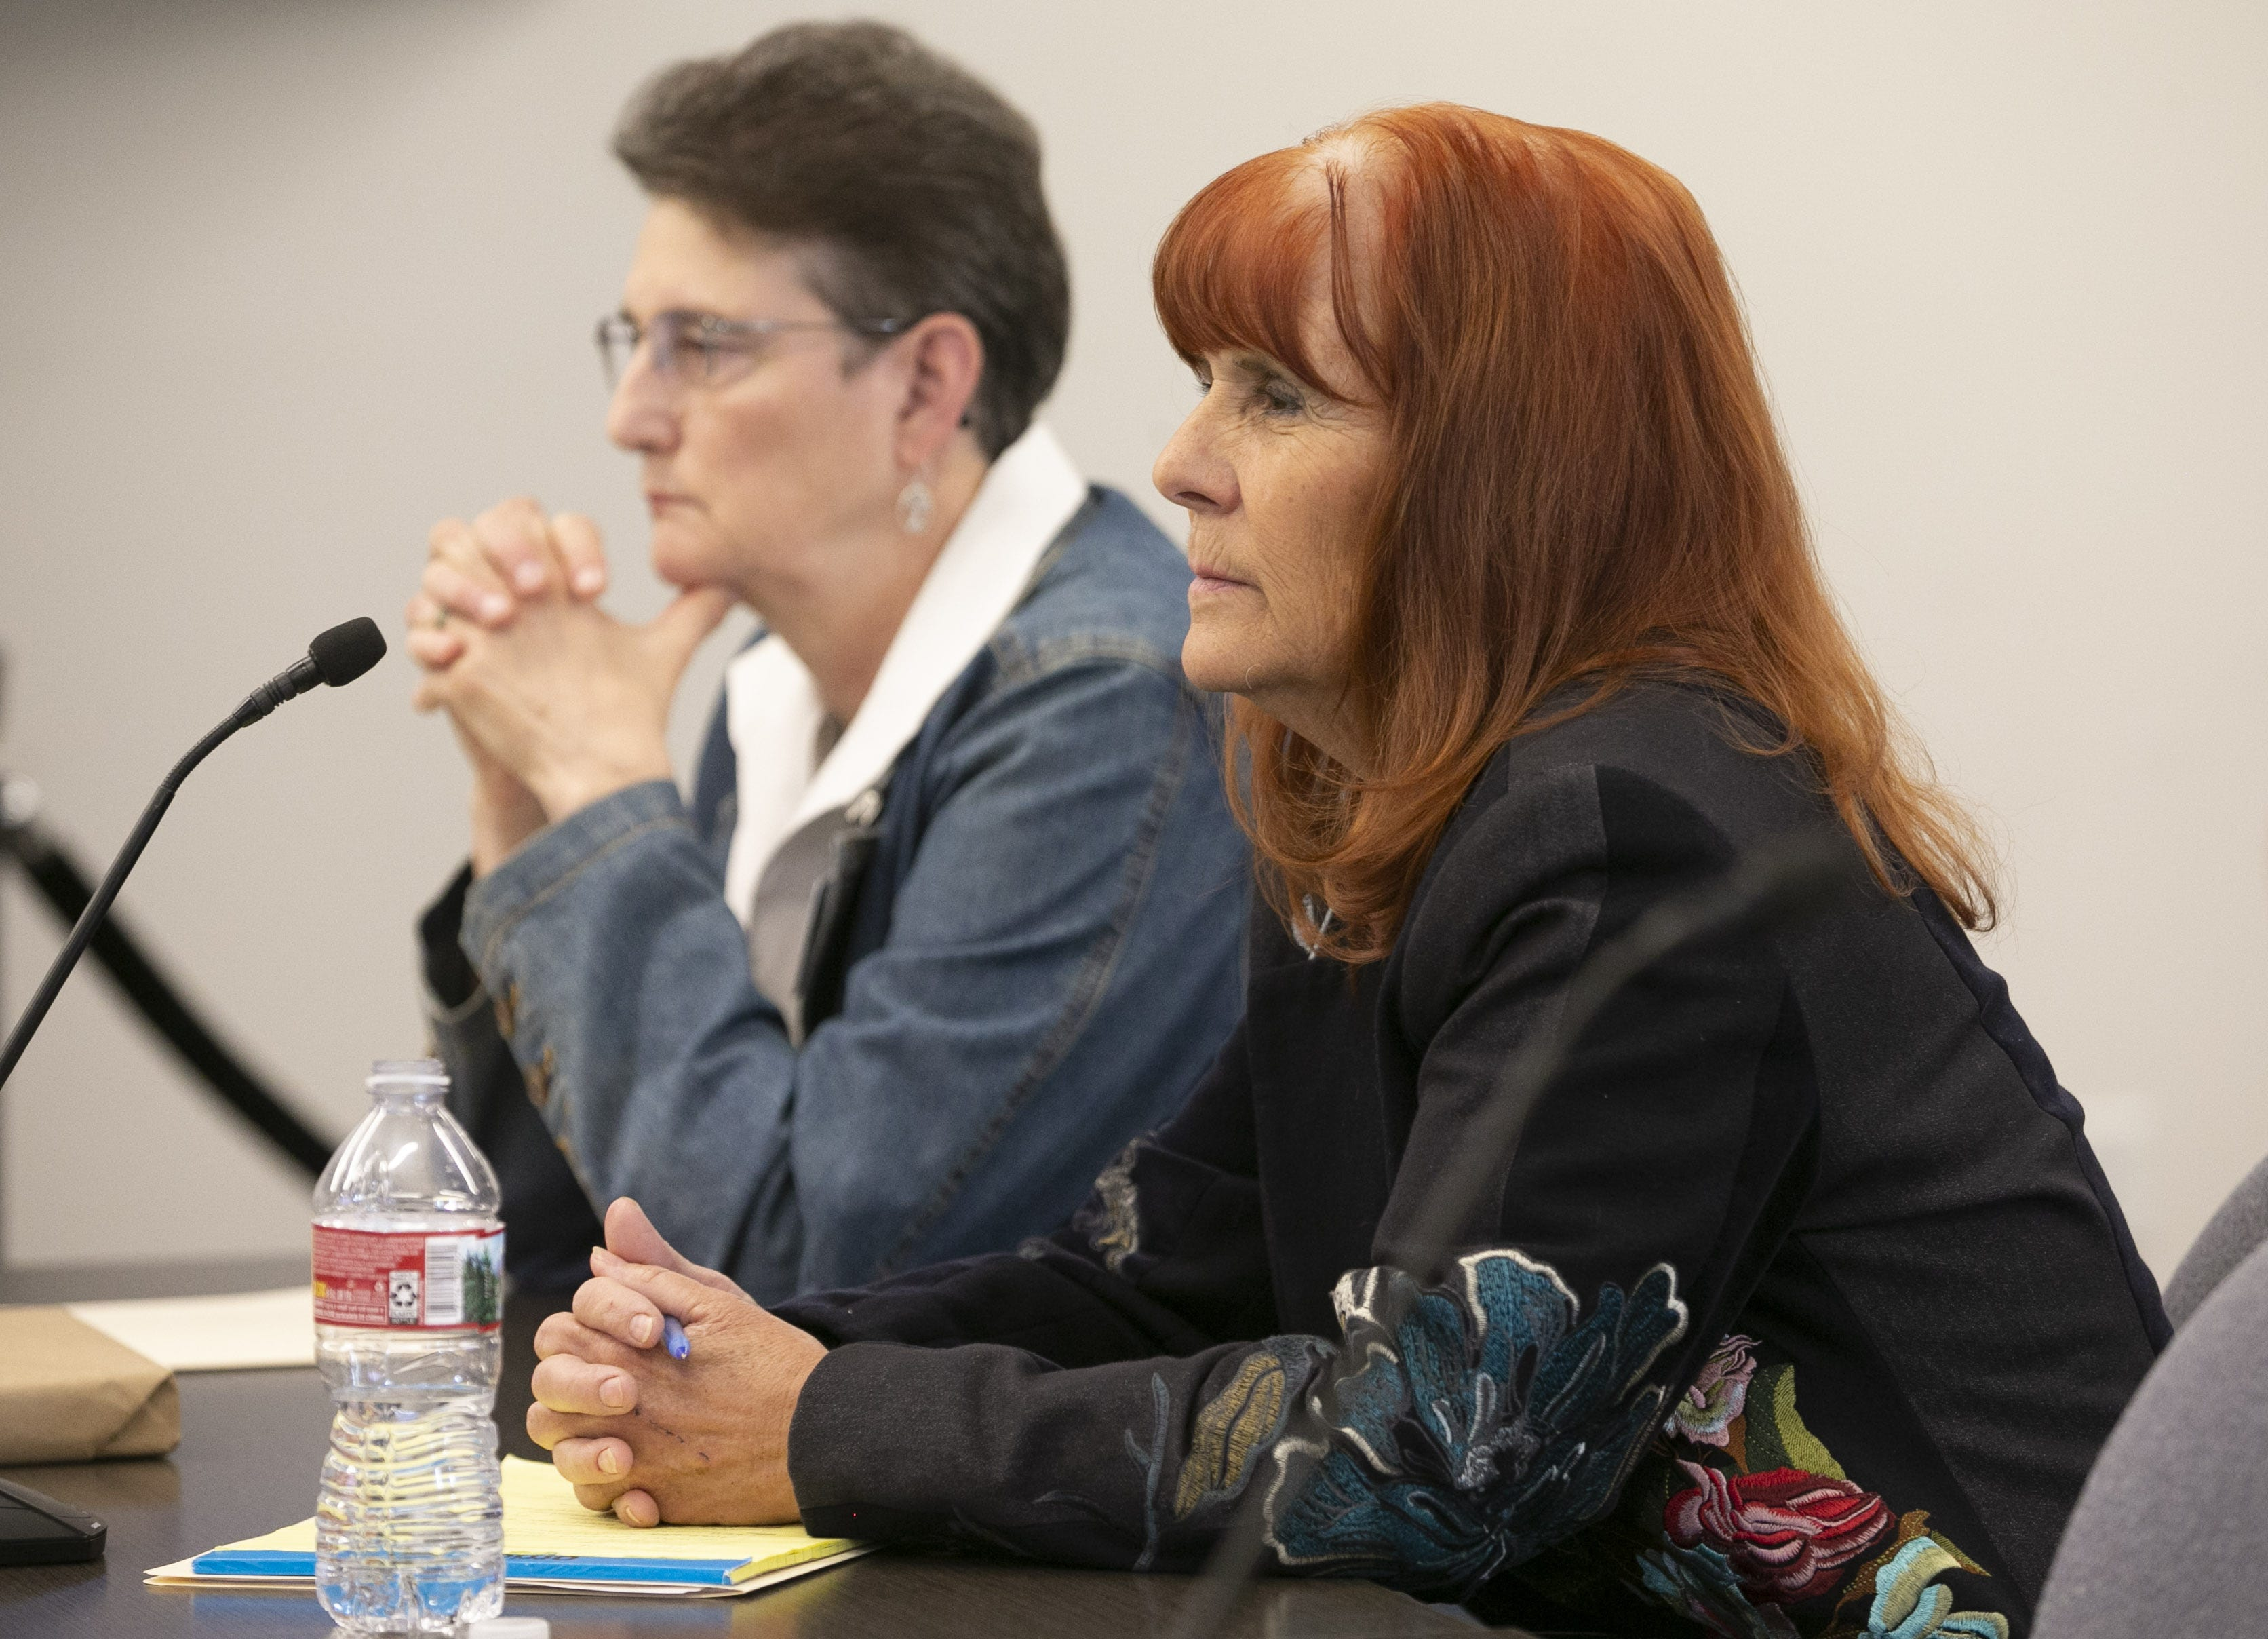 Victoria Bowmann (right) and Mlee Clark, chair and vice chair  of the Arizona State Board of Massage Therapy, listen during a public board meeting on Jan. 31, 2020, in Phoenix.